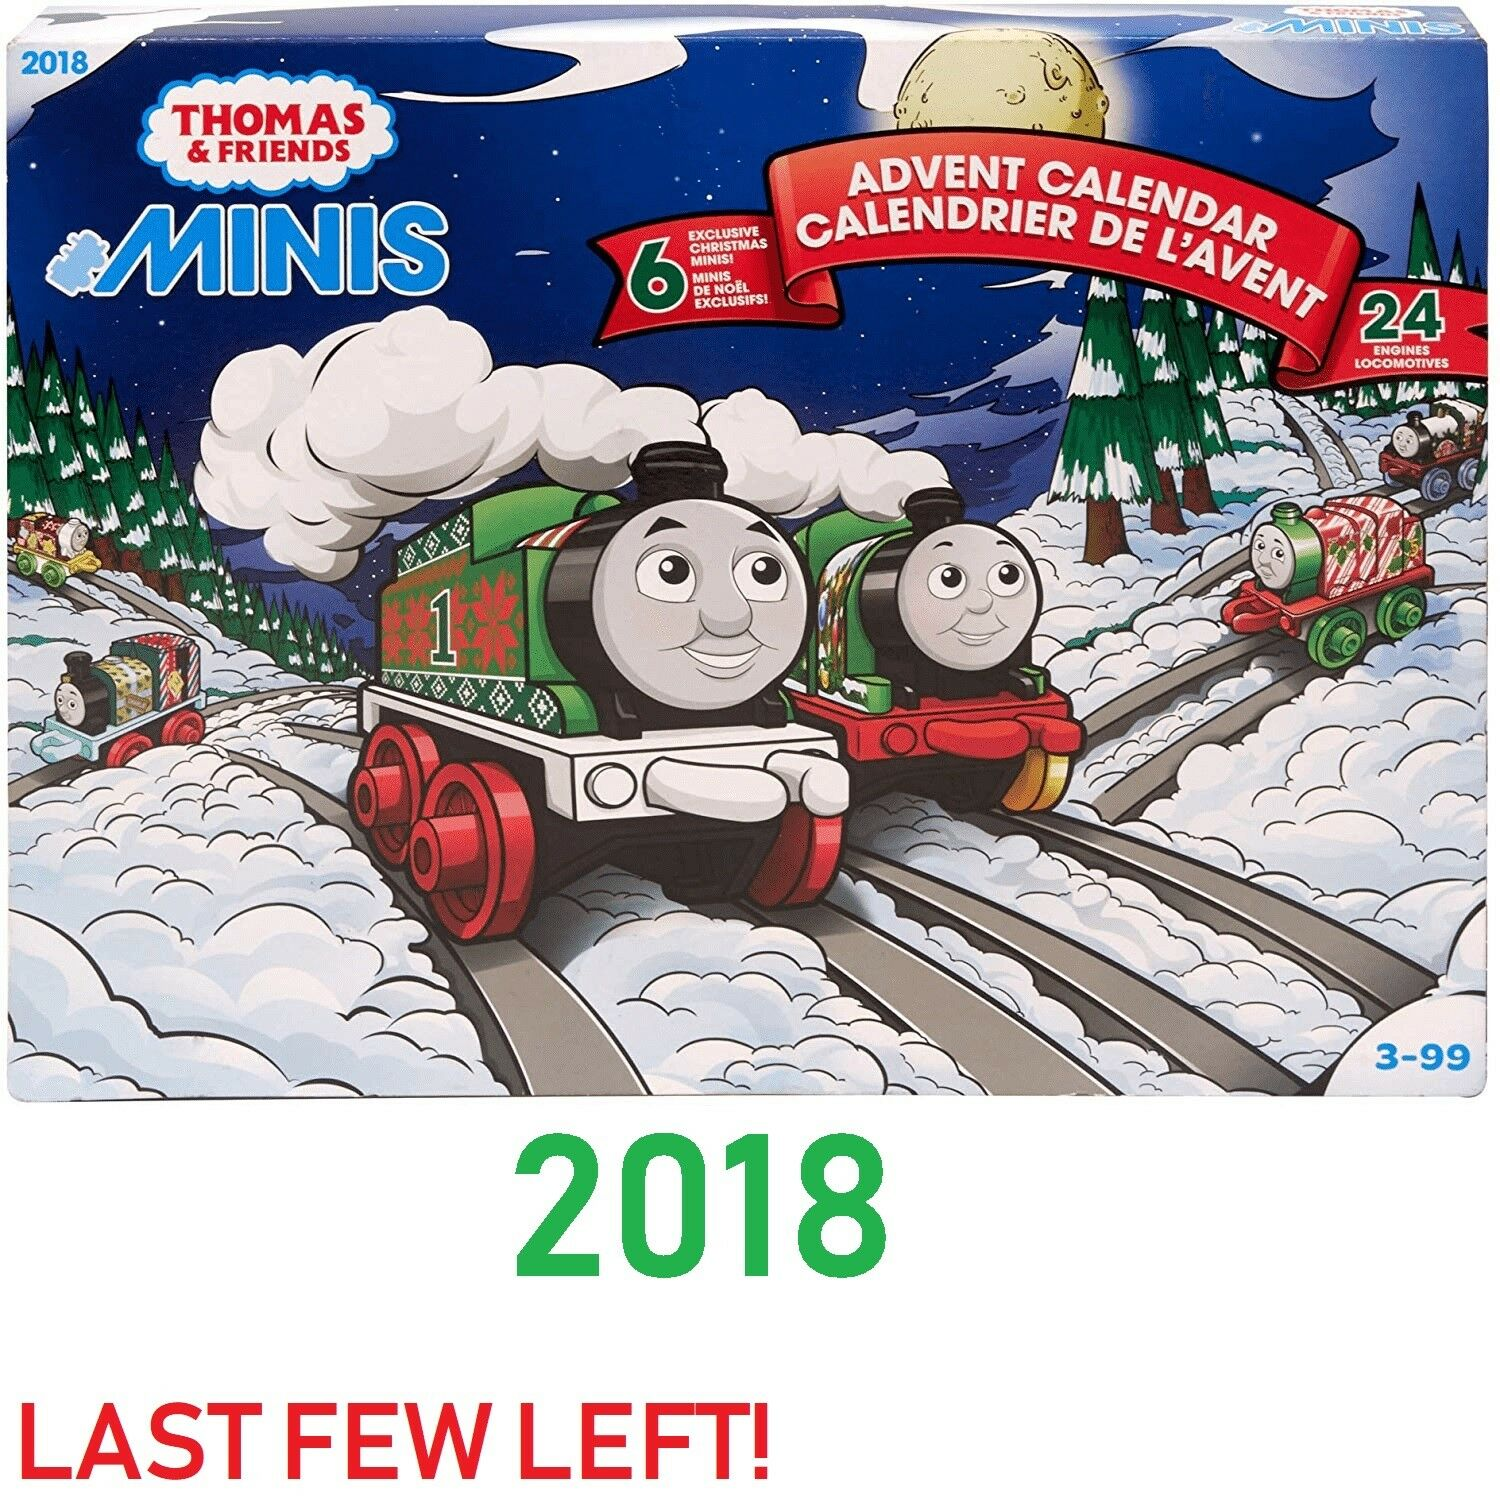 2018 Thomas Friends-Thomas Mini's & de navidad Adviento Calendario 6 exclusivo trenes